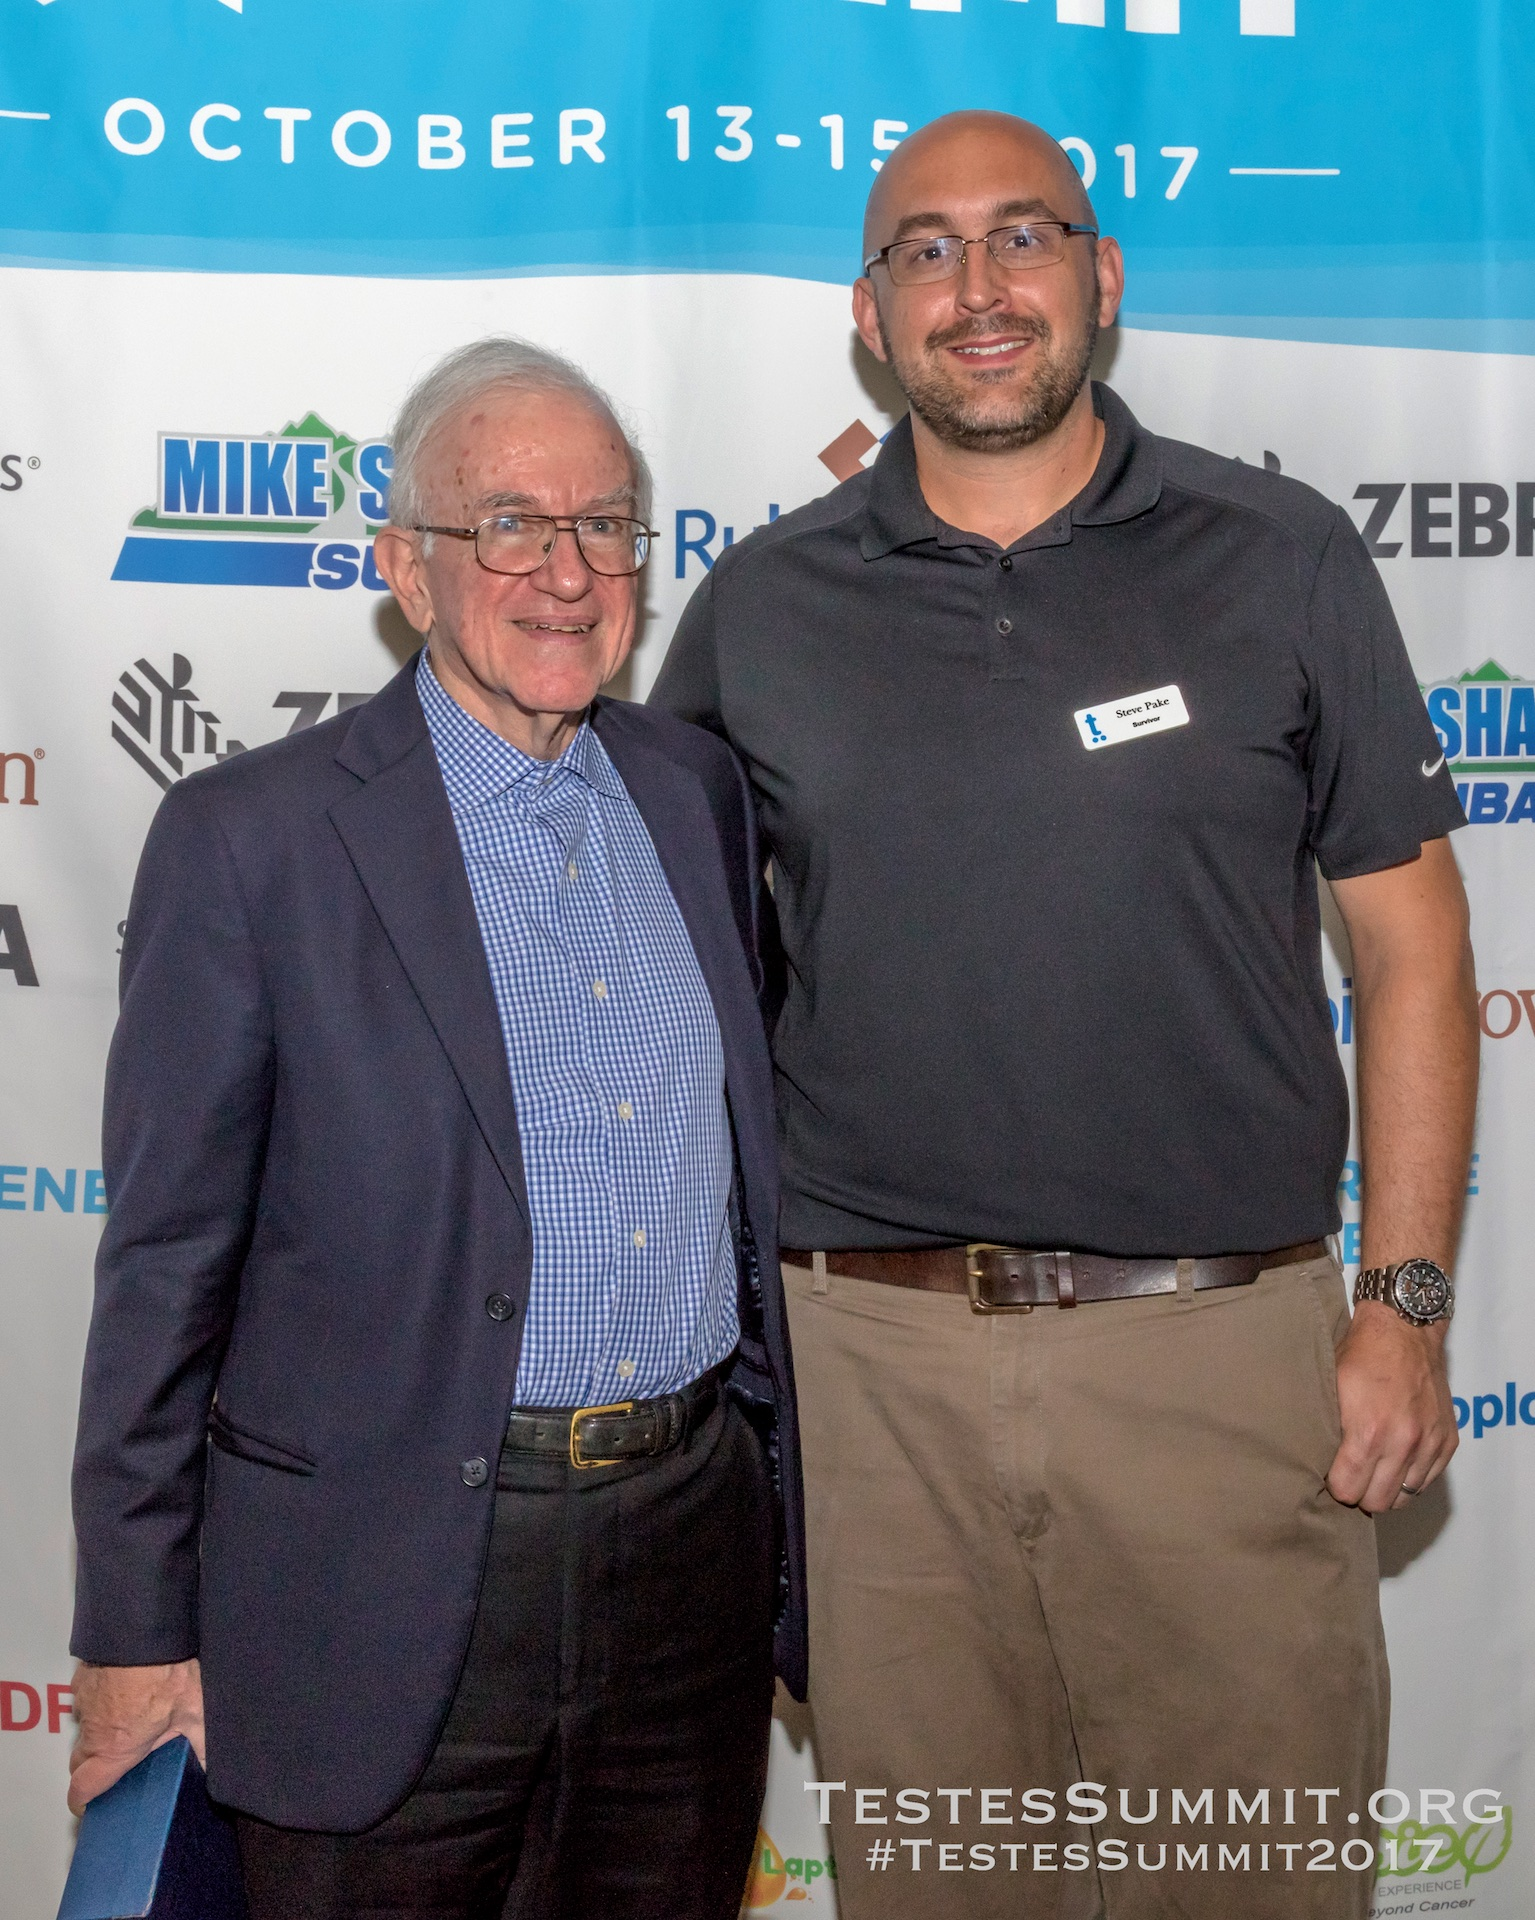 Dr Lawrence Einhorn with Testes Summit Owner/Co-Founder and Chair, Steve Pake